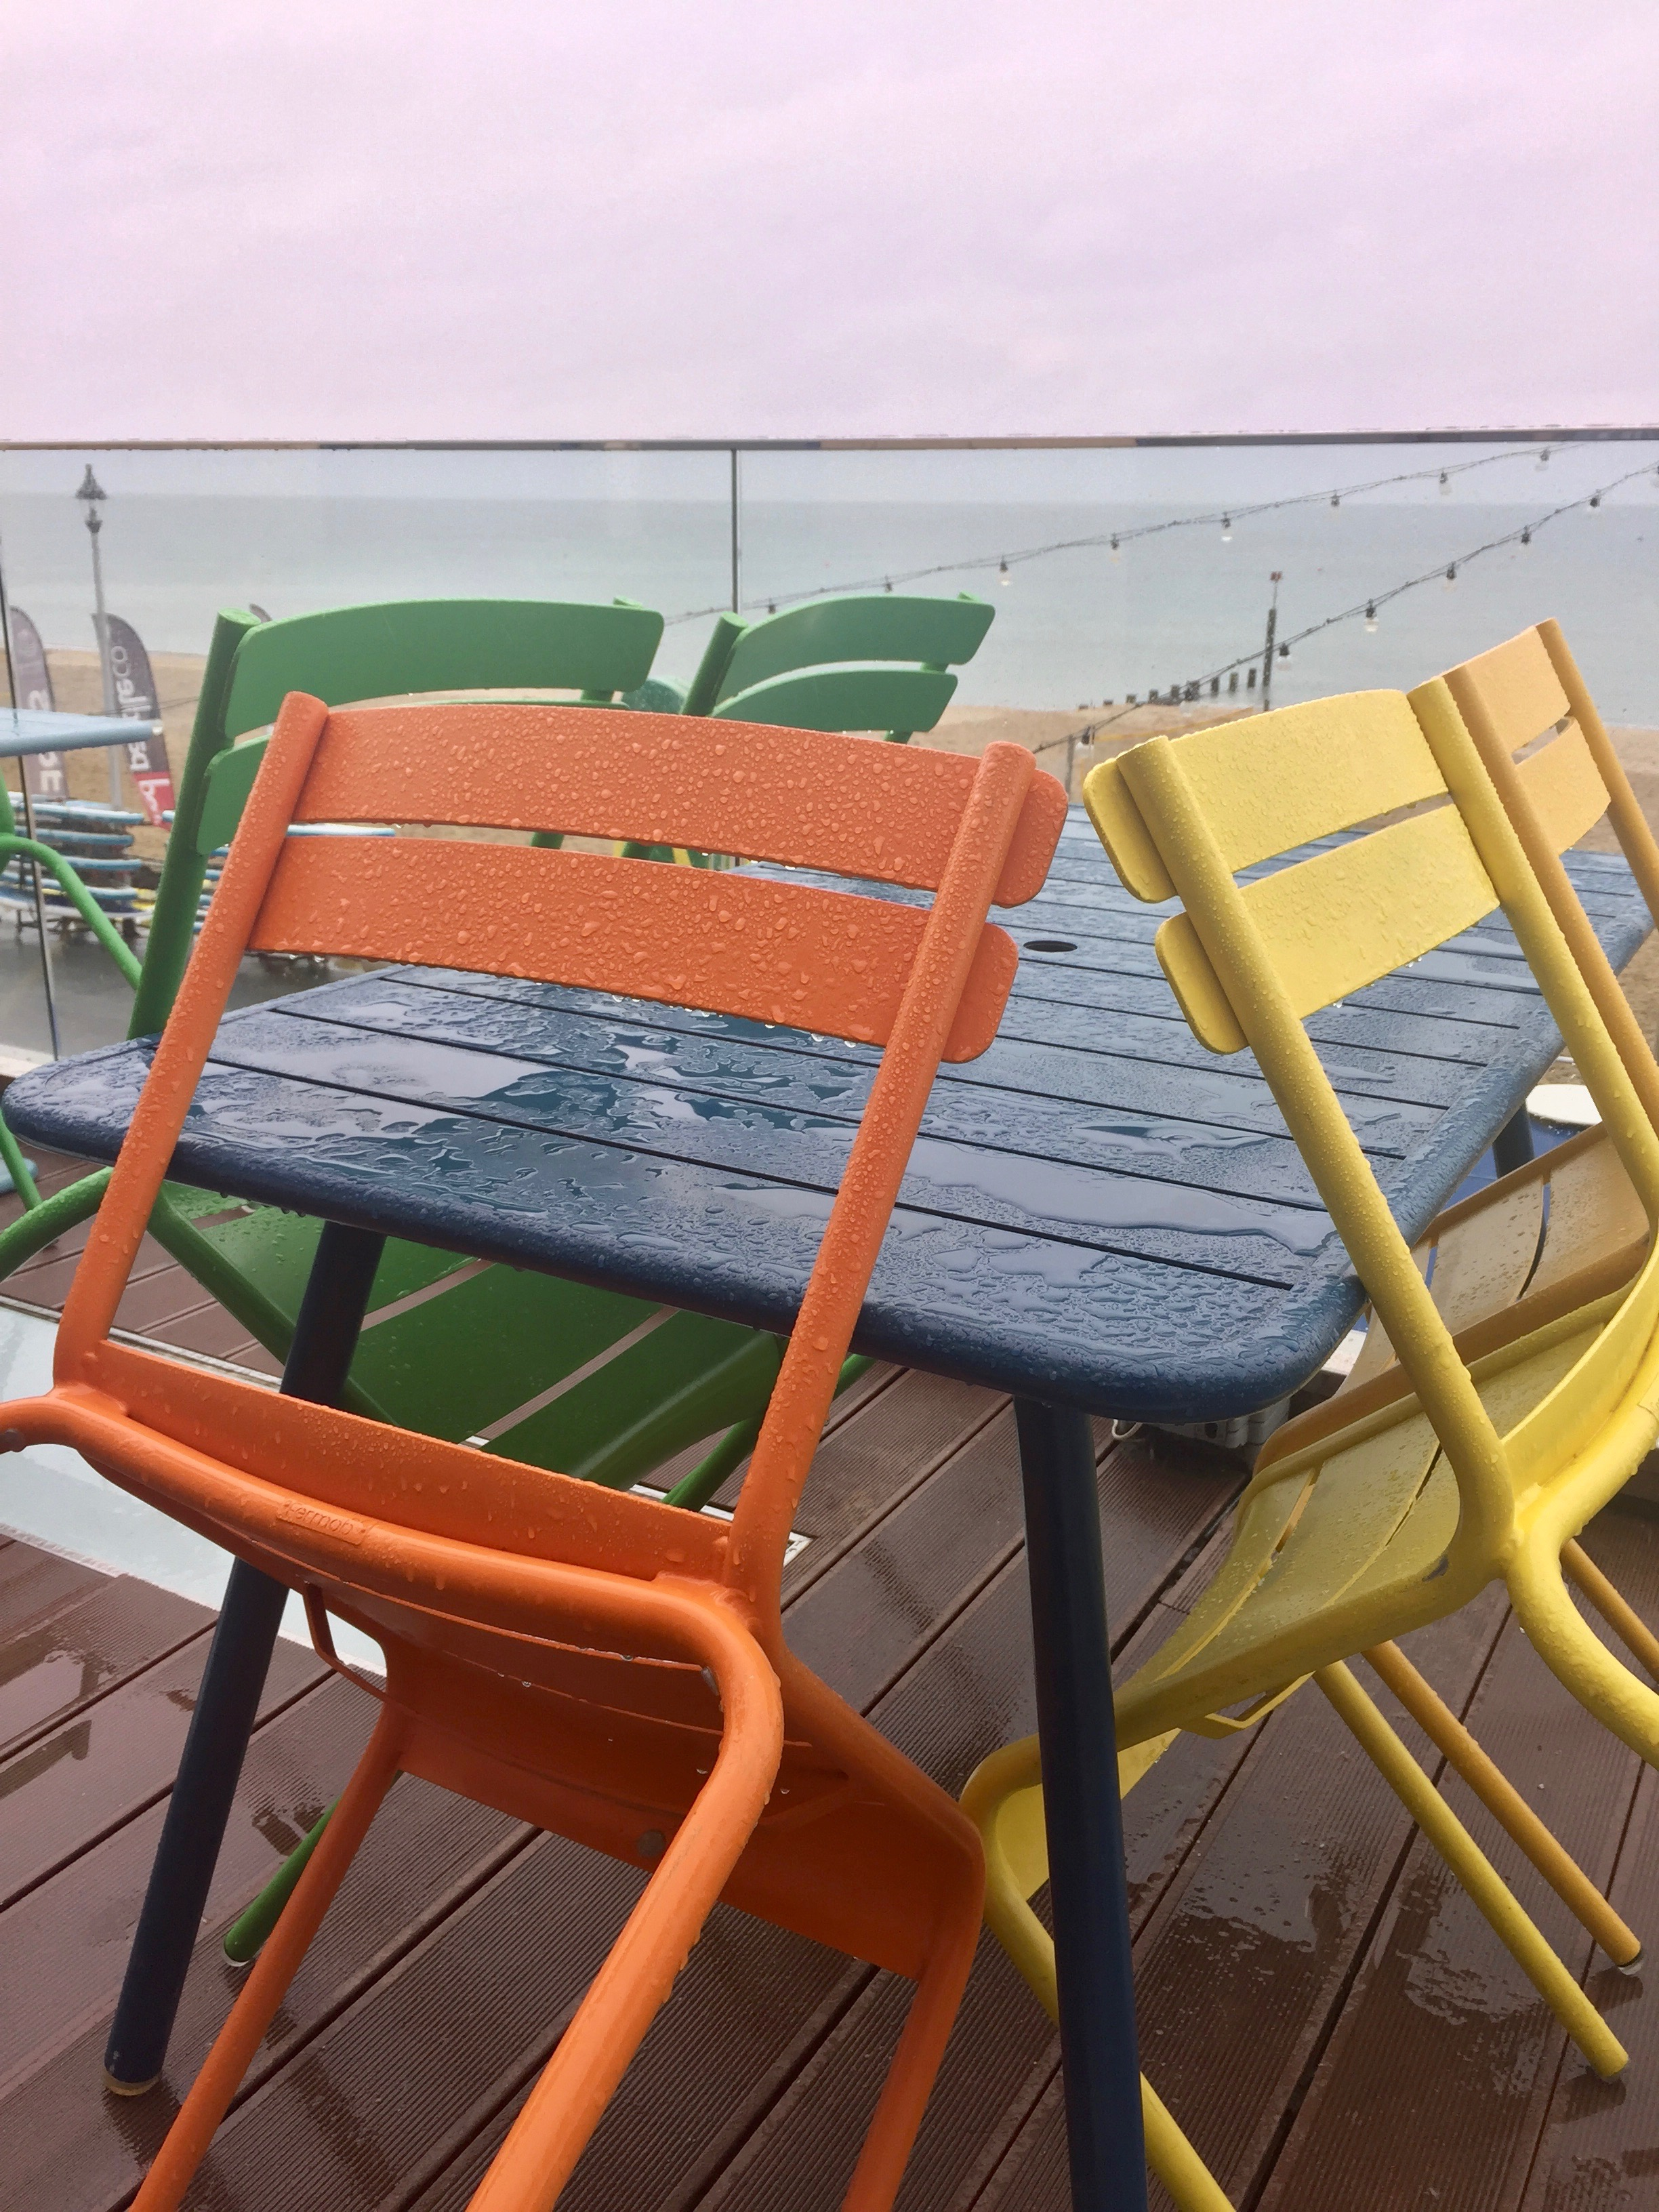 Beach cafe in the rain. Pretty chairs.